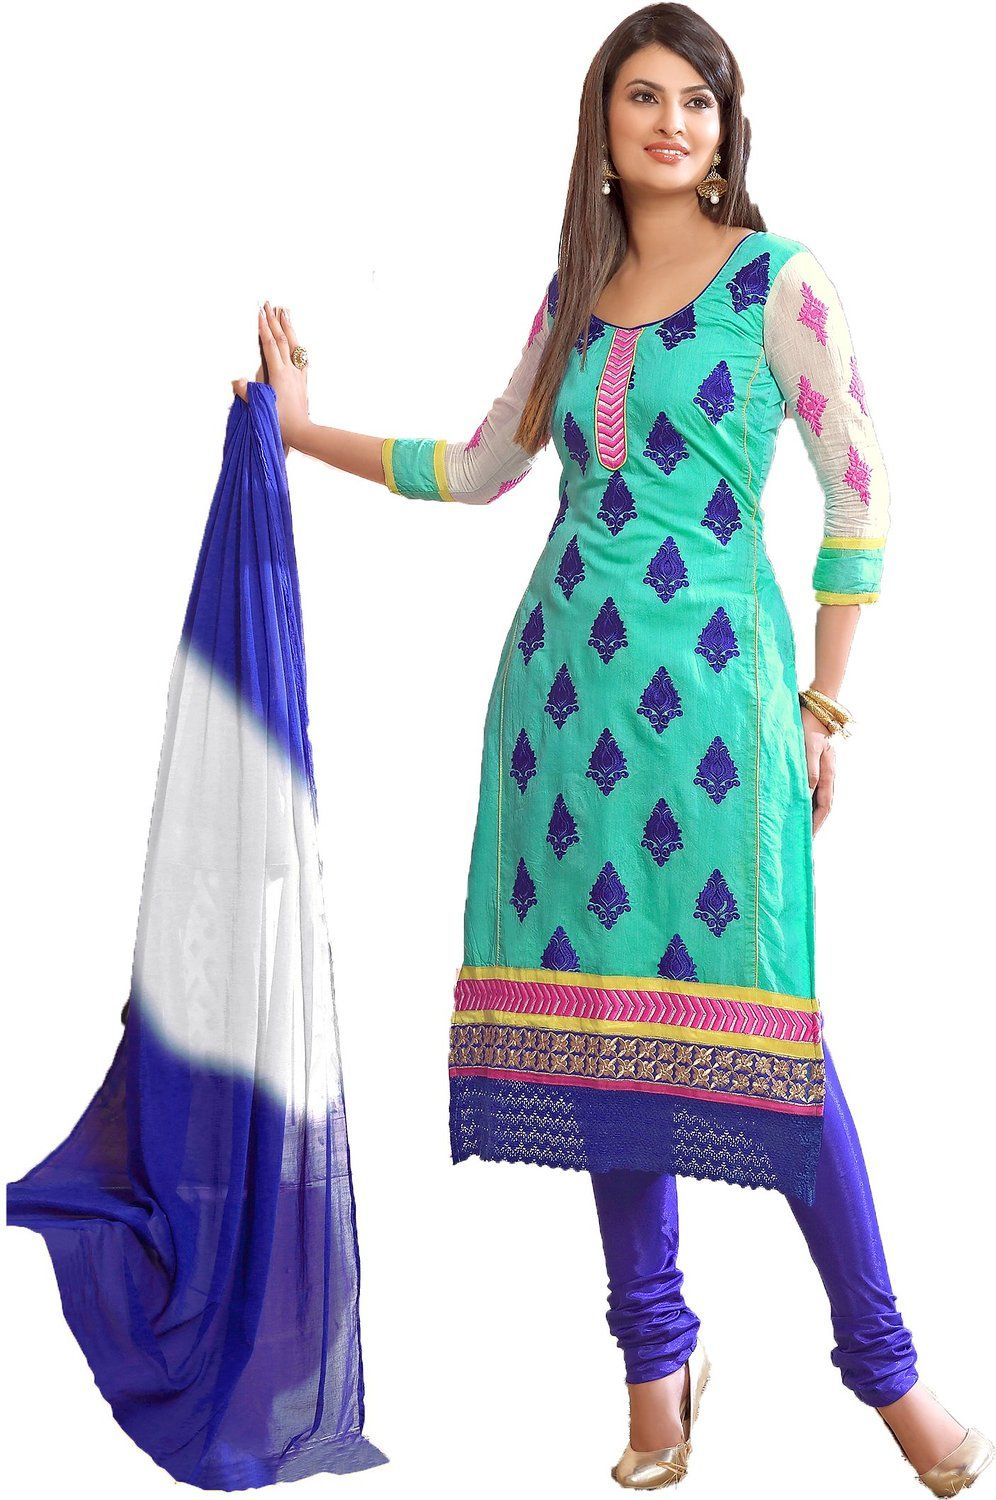 chakudee by white blue chanderi drees material: Amazon.in: Clothing ...